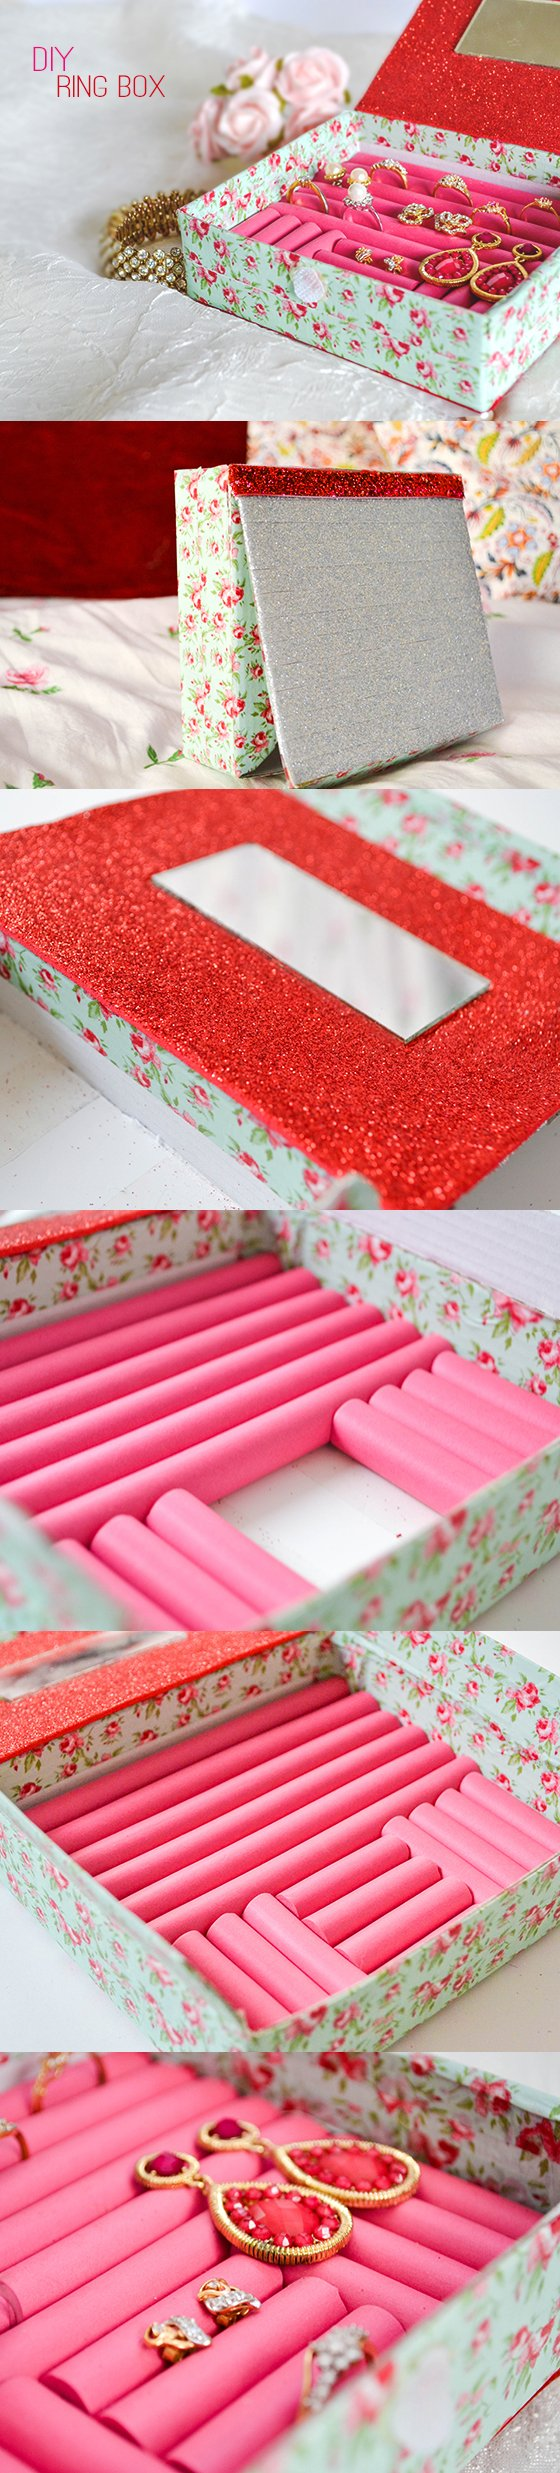 Diy projects how to make ring organizers pretty designs paper box solutioingenieria Images